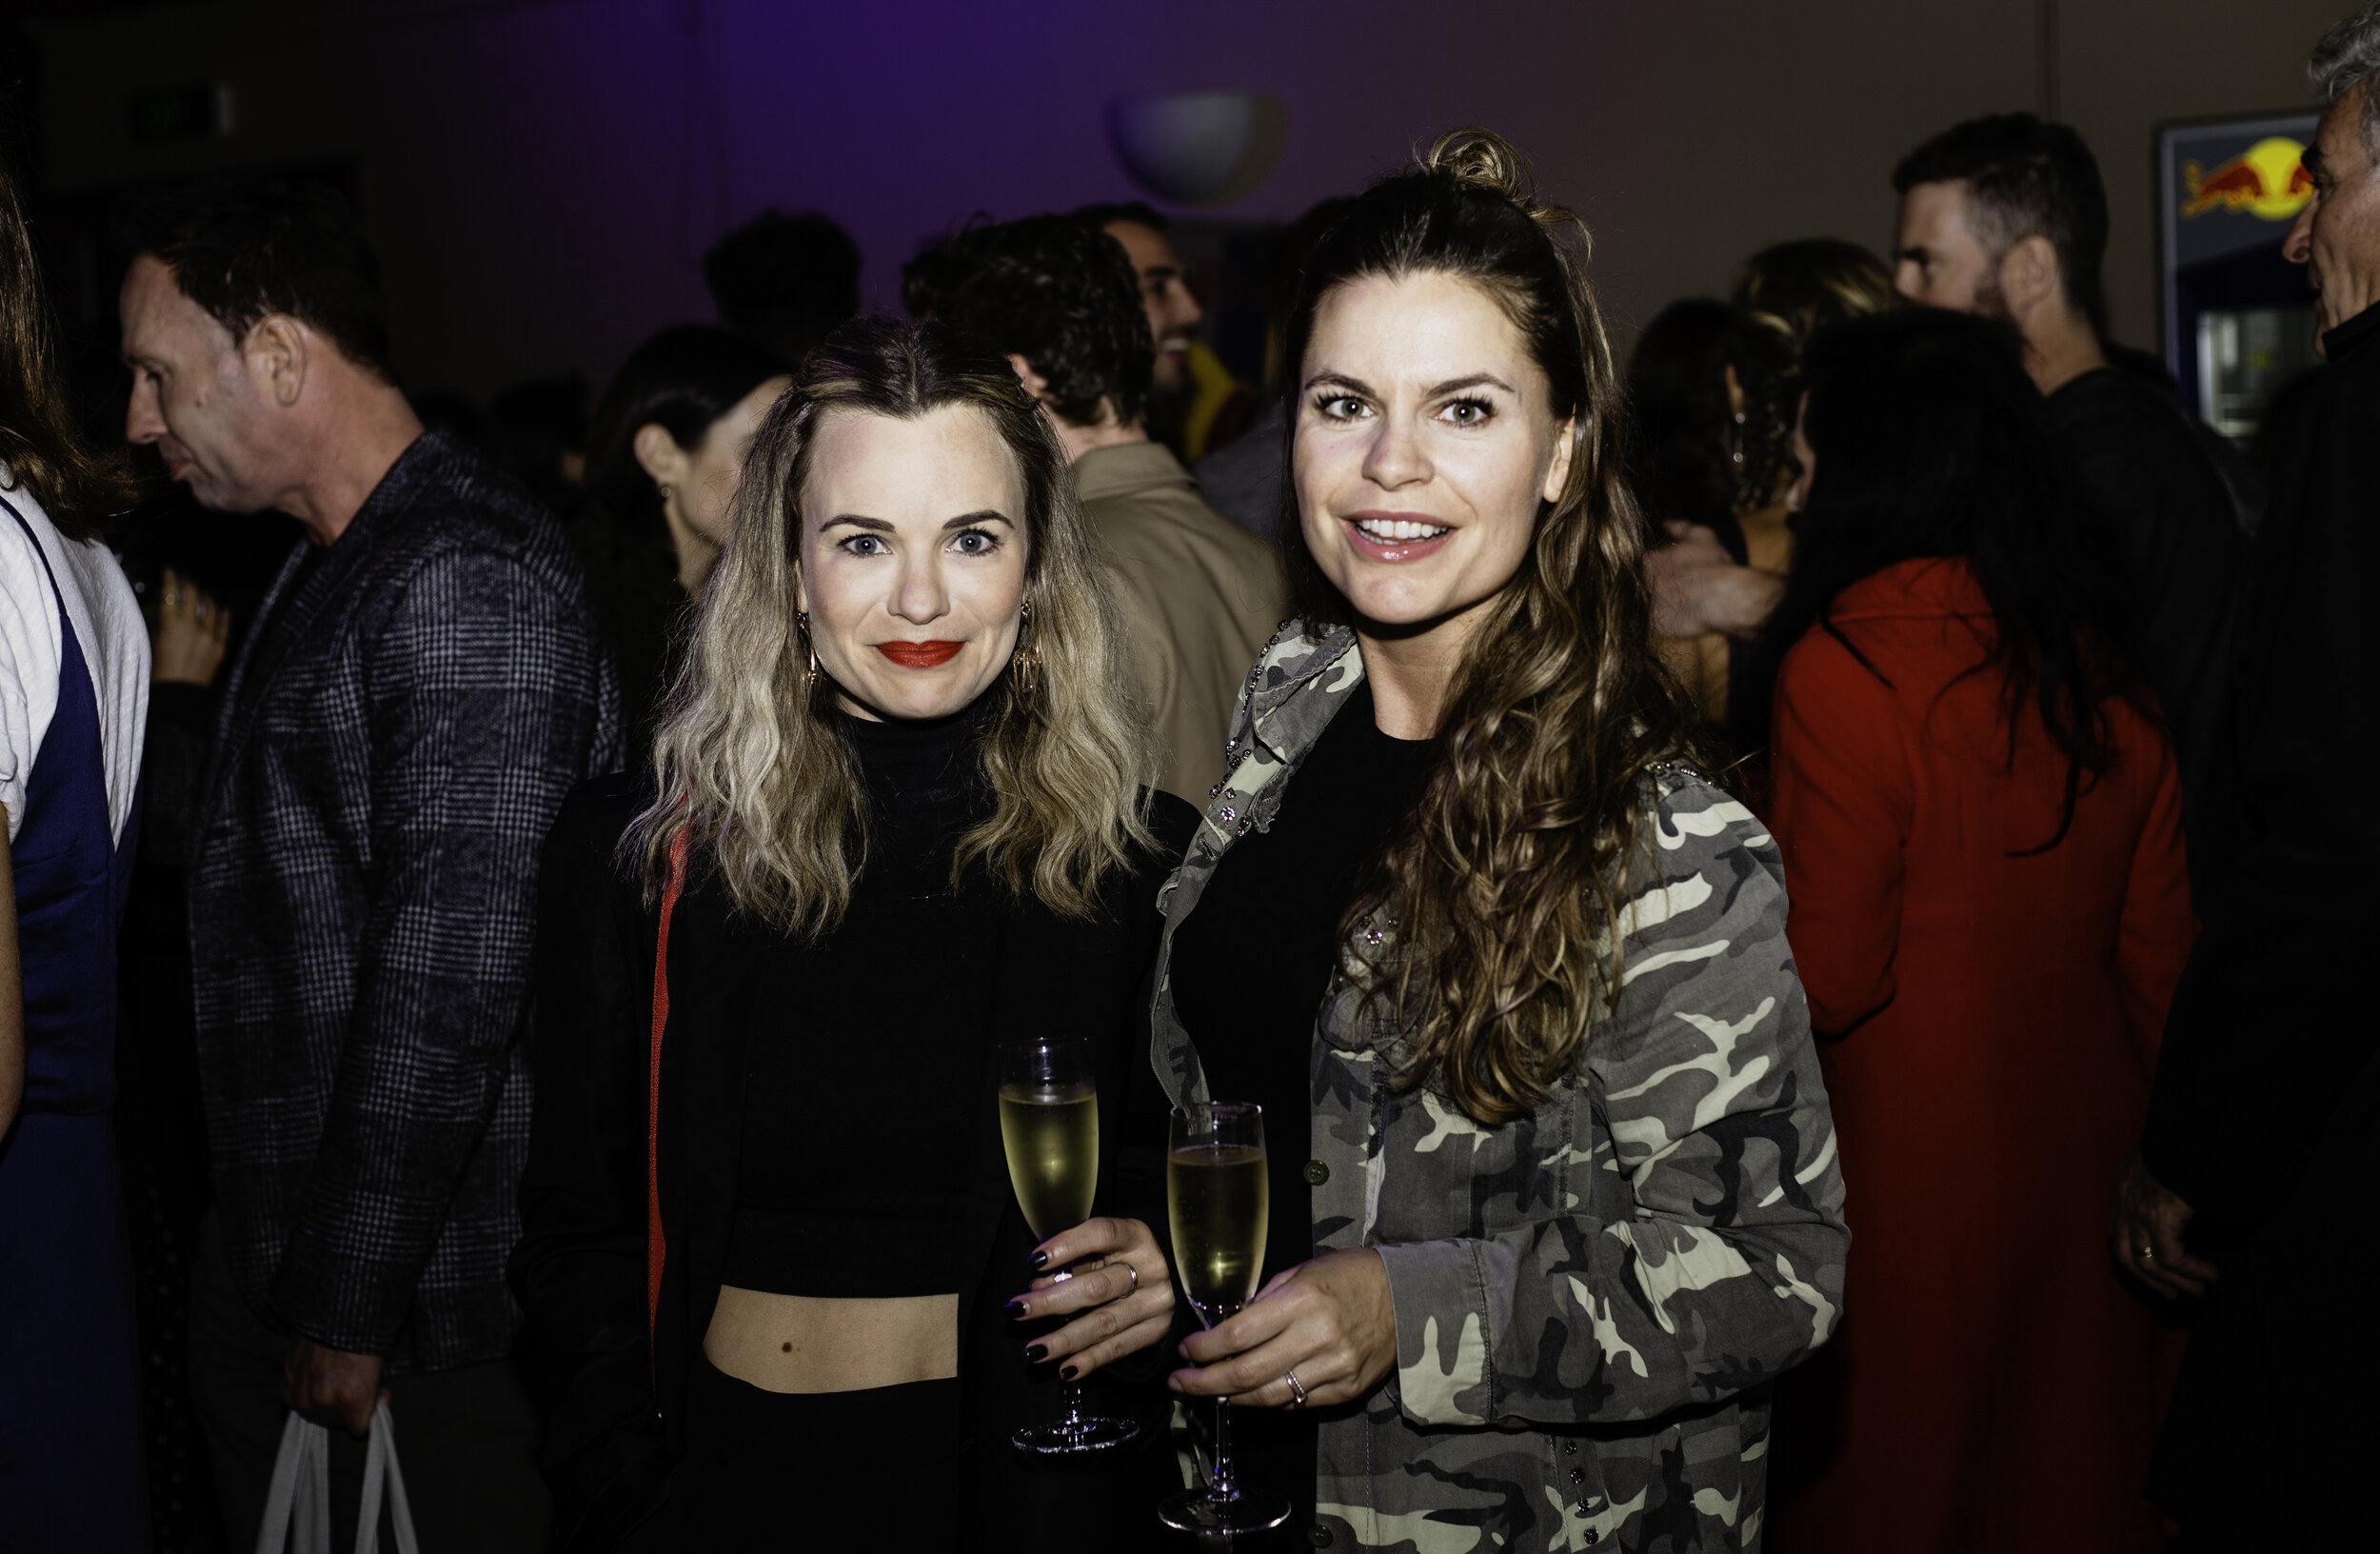 BrookeWaterson_Other_OfficialParty4_2019PhotoComp.jpg